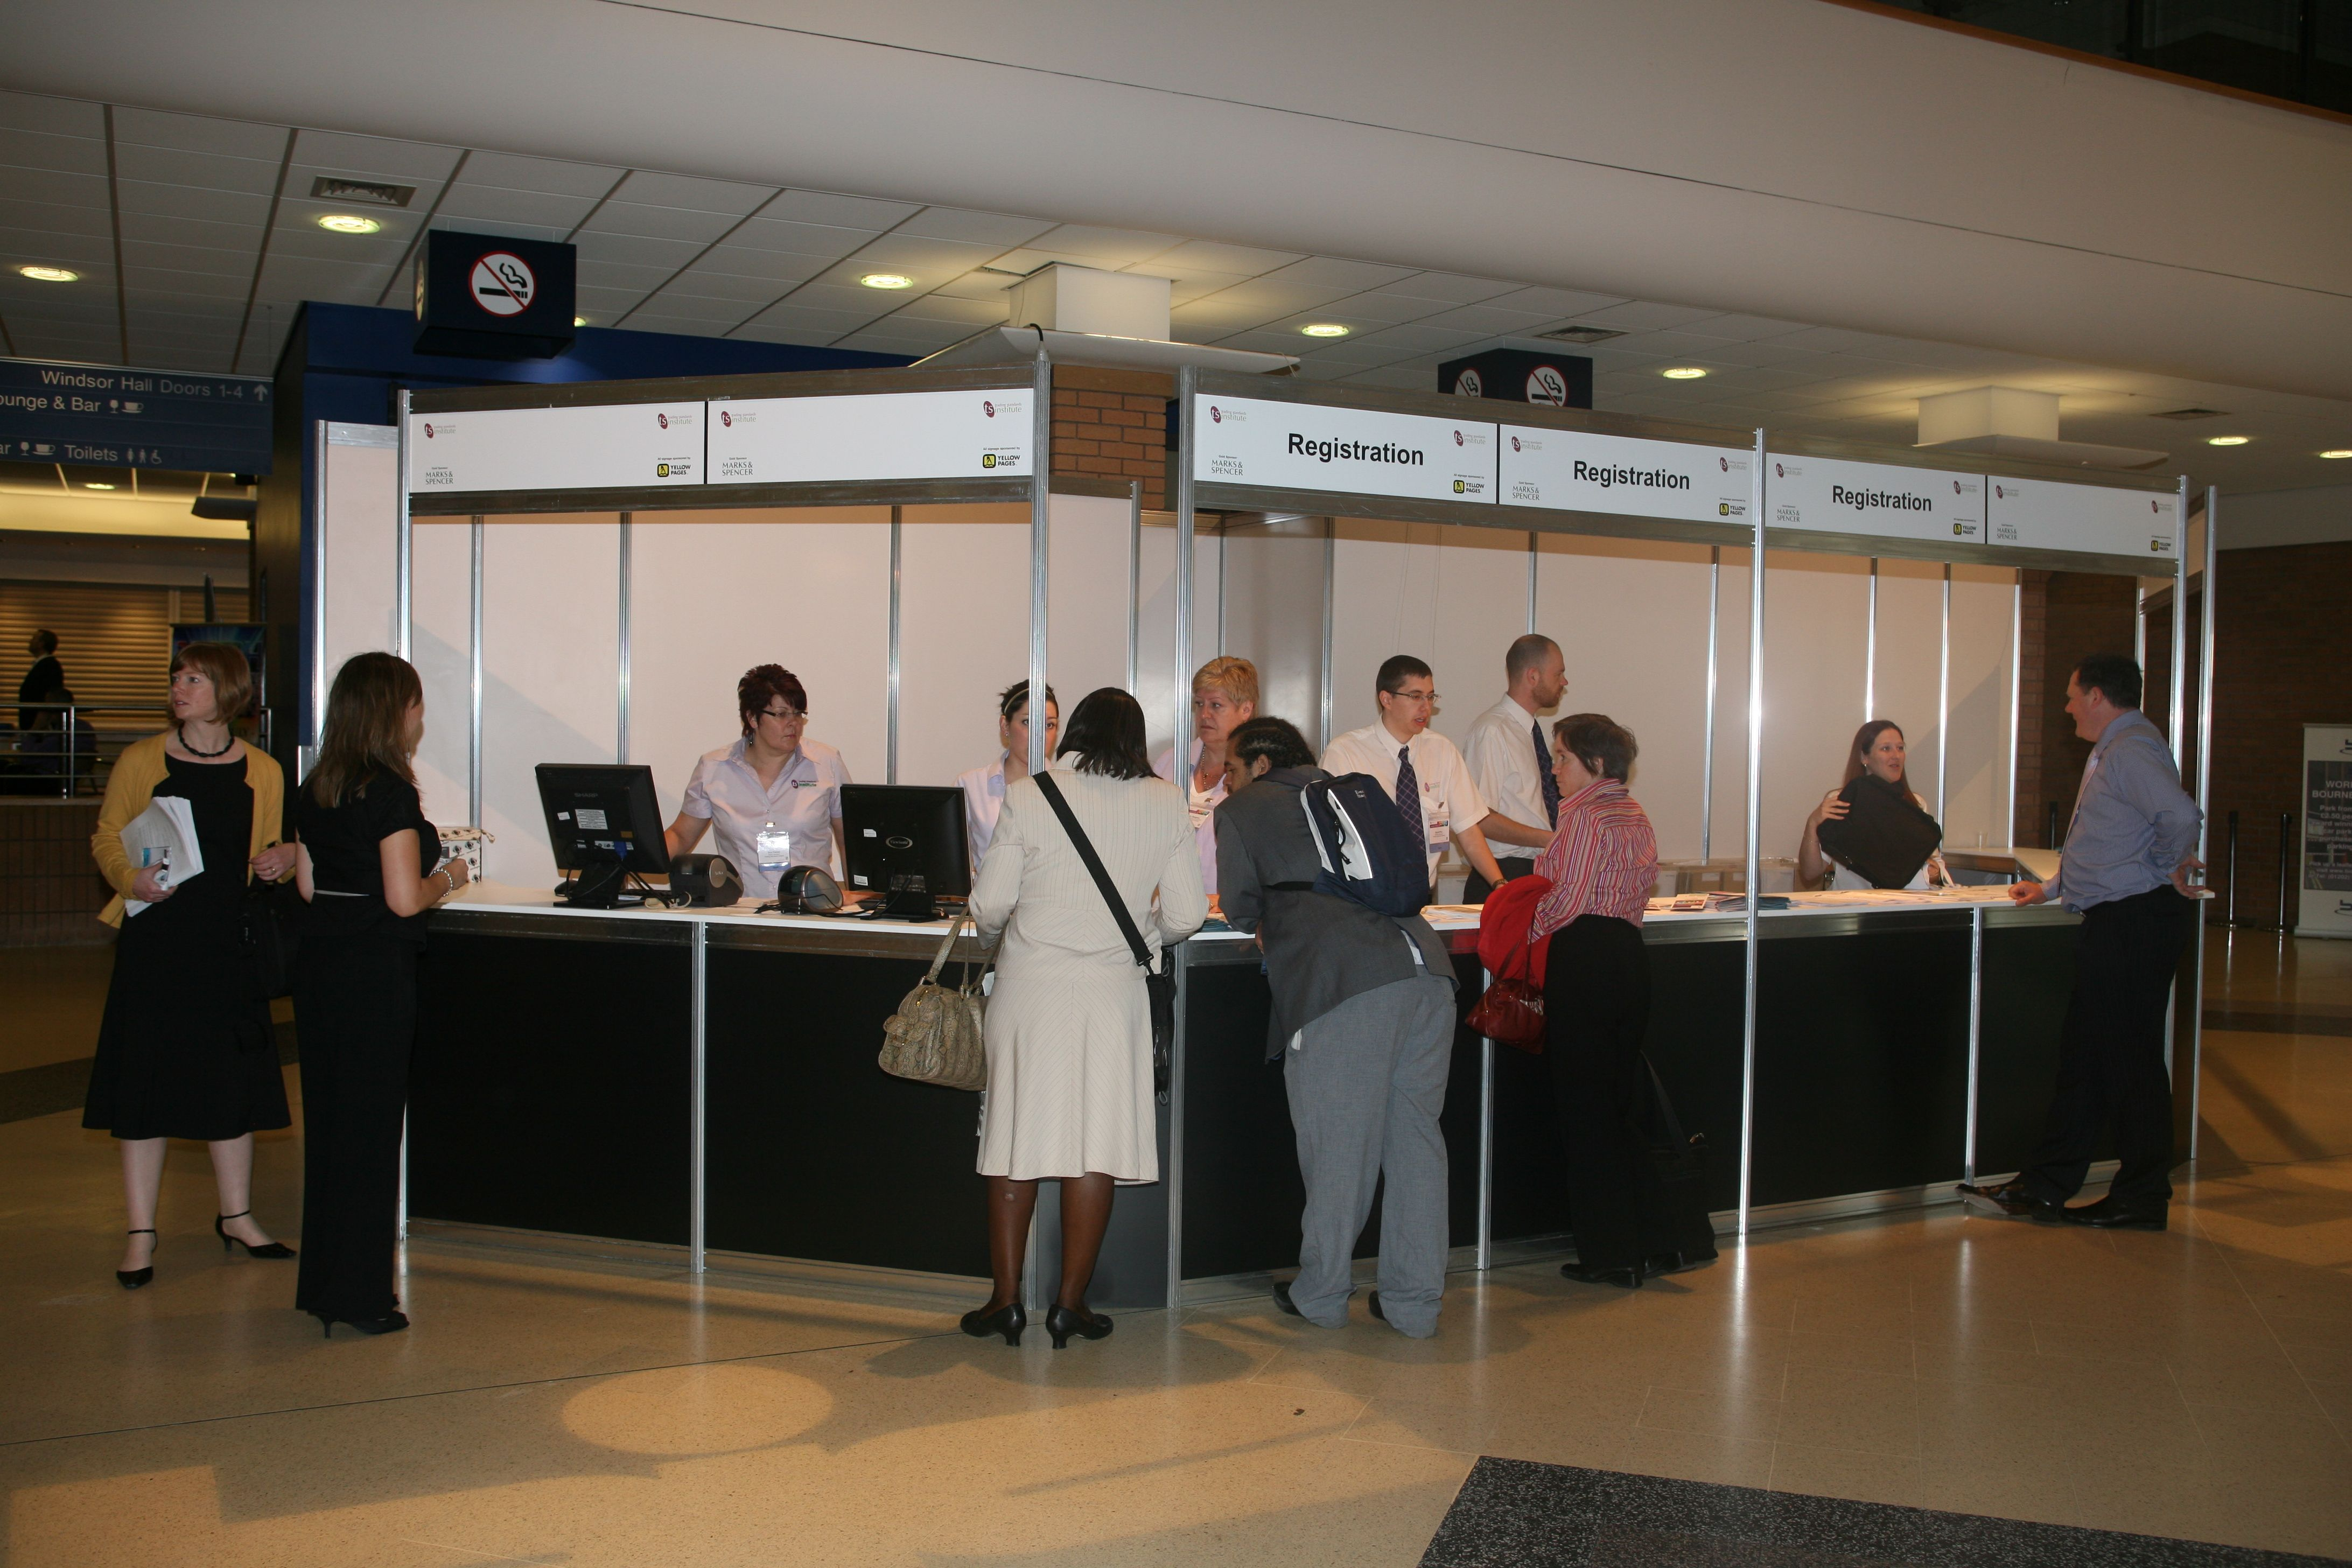 Exhibition Shell Scheme Panels : White octanorm panels registration reception areas